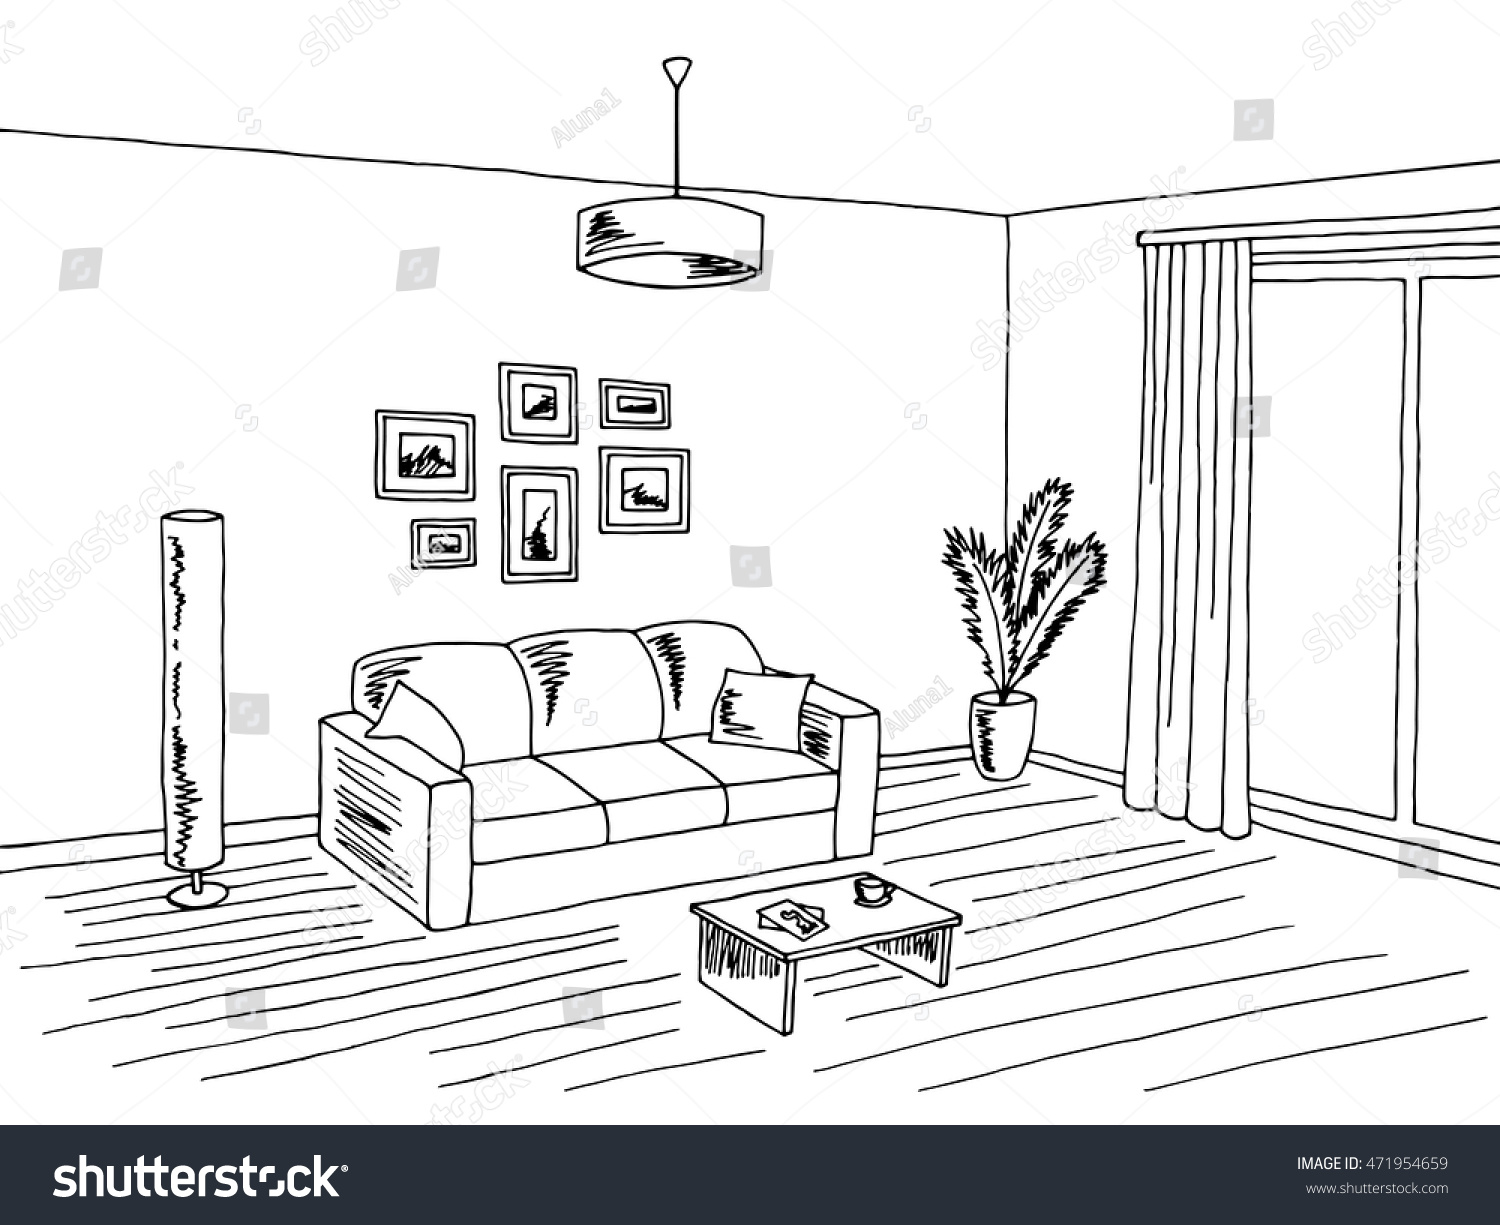 Living Room Interior Black White Graphic Art Sketch Illustration Vector